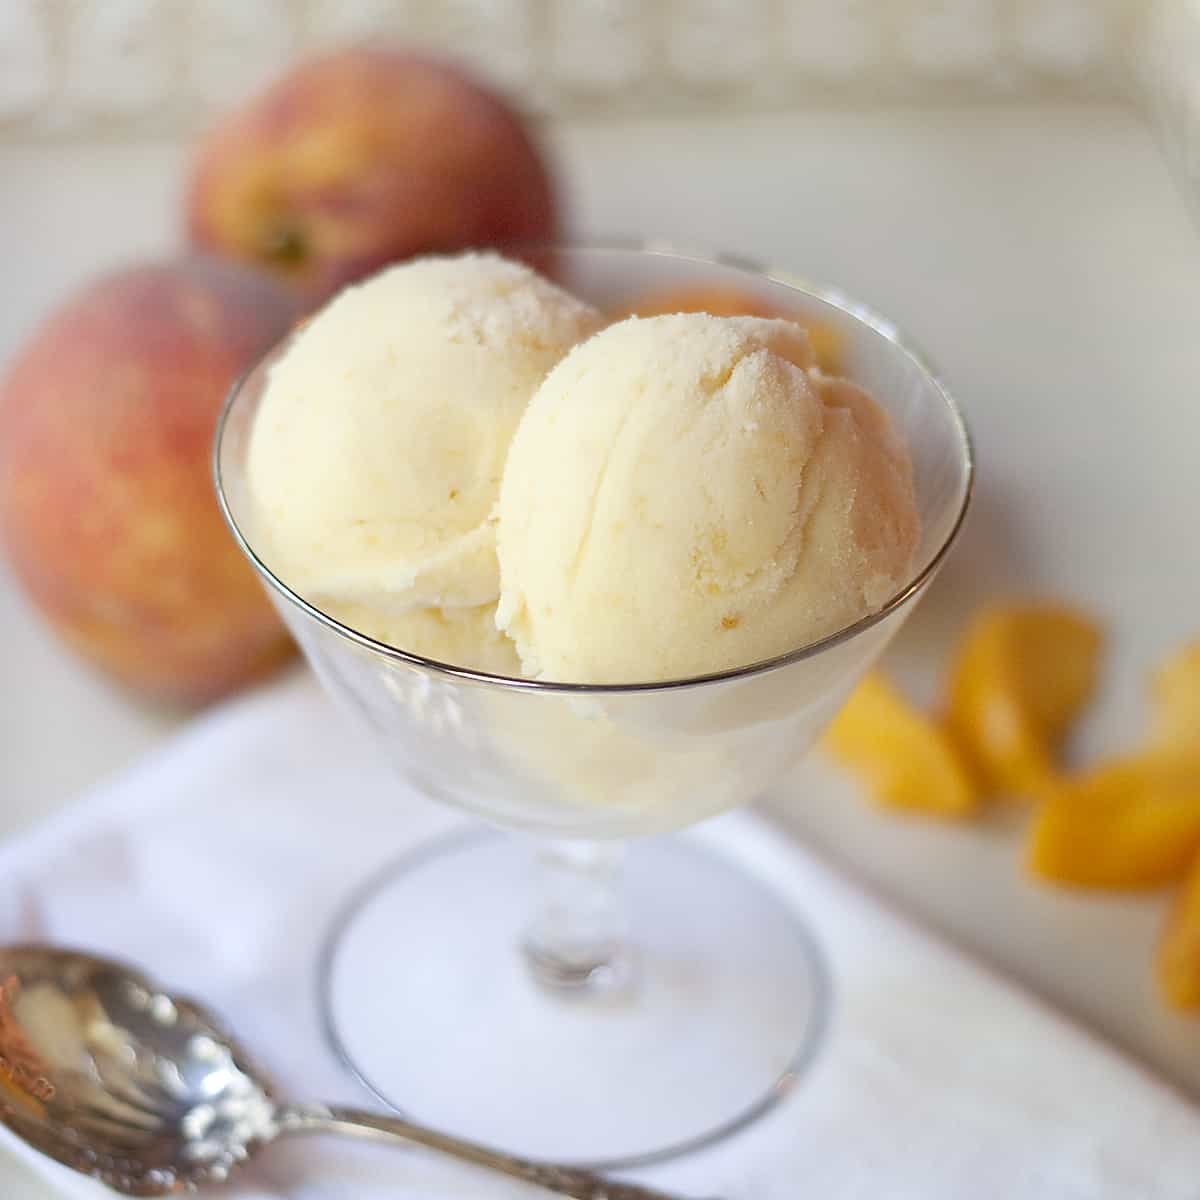 Creamy, cold and delicious homemade peach ice cream with sweet, fresh Georgia grown peaches and rich with eggs, heavy cream, and whole milk. From @NevrEnoughThyme https://www.lanascooking.com/homemade-peach-ice-cream/